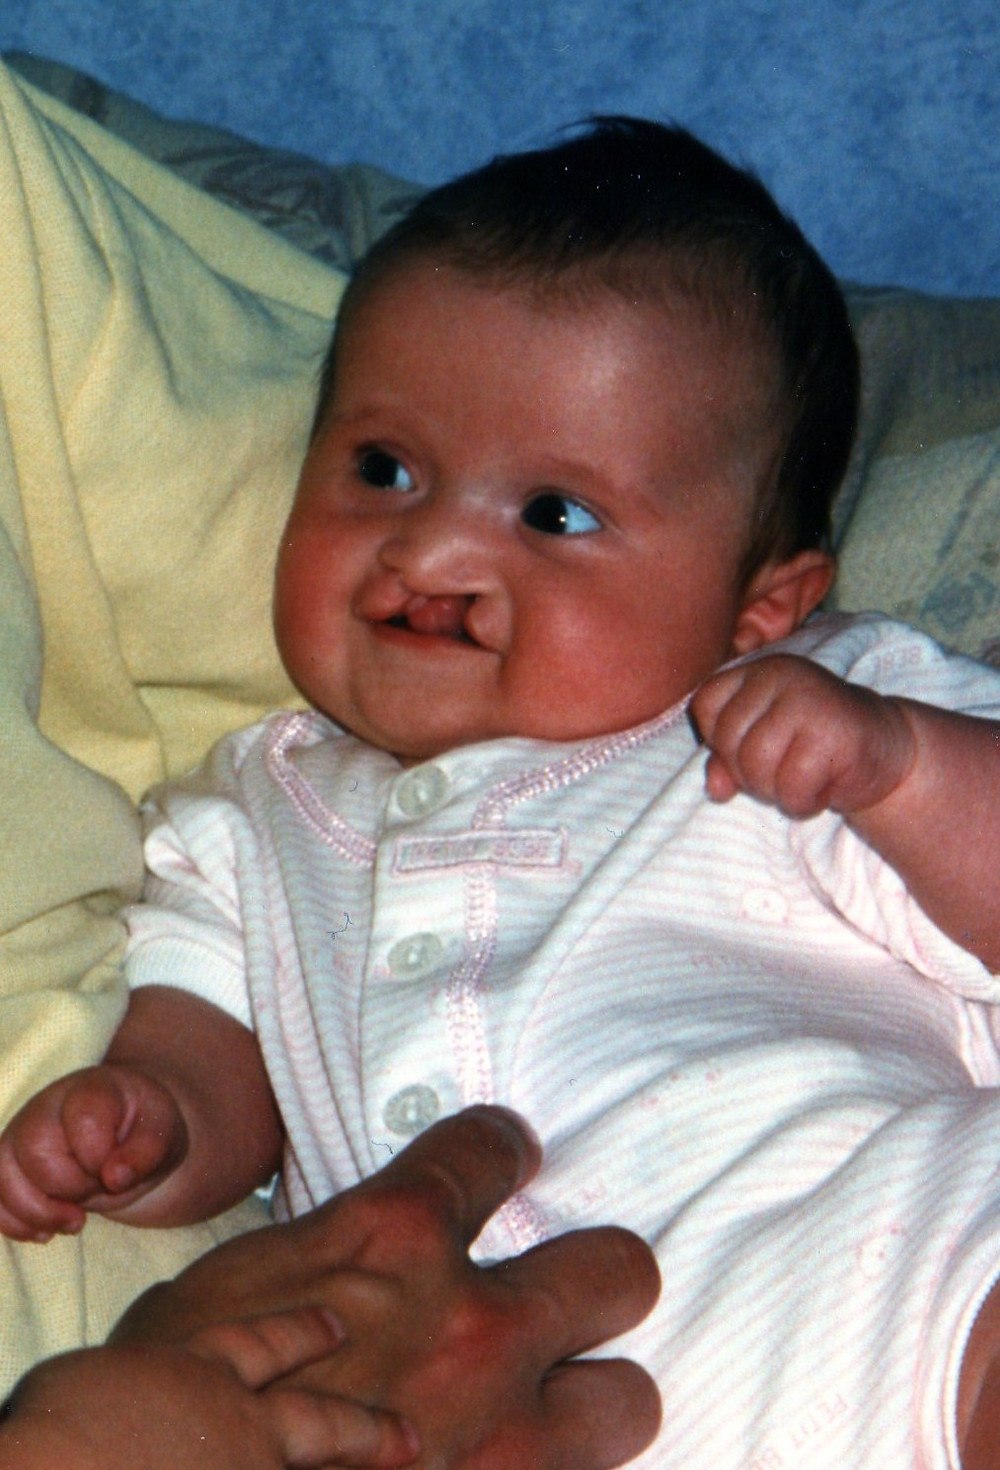 cleft lip and palate baby, real cleft lip and palate patient story and psychology